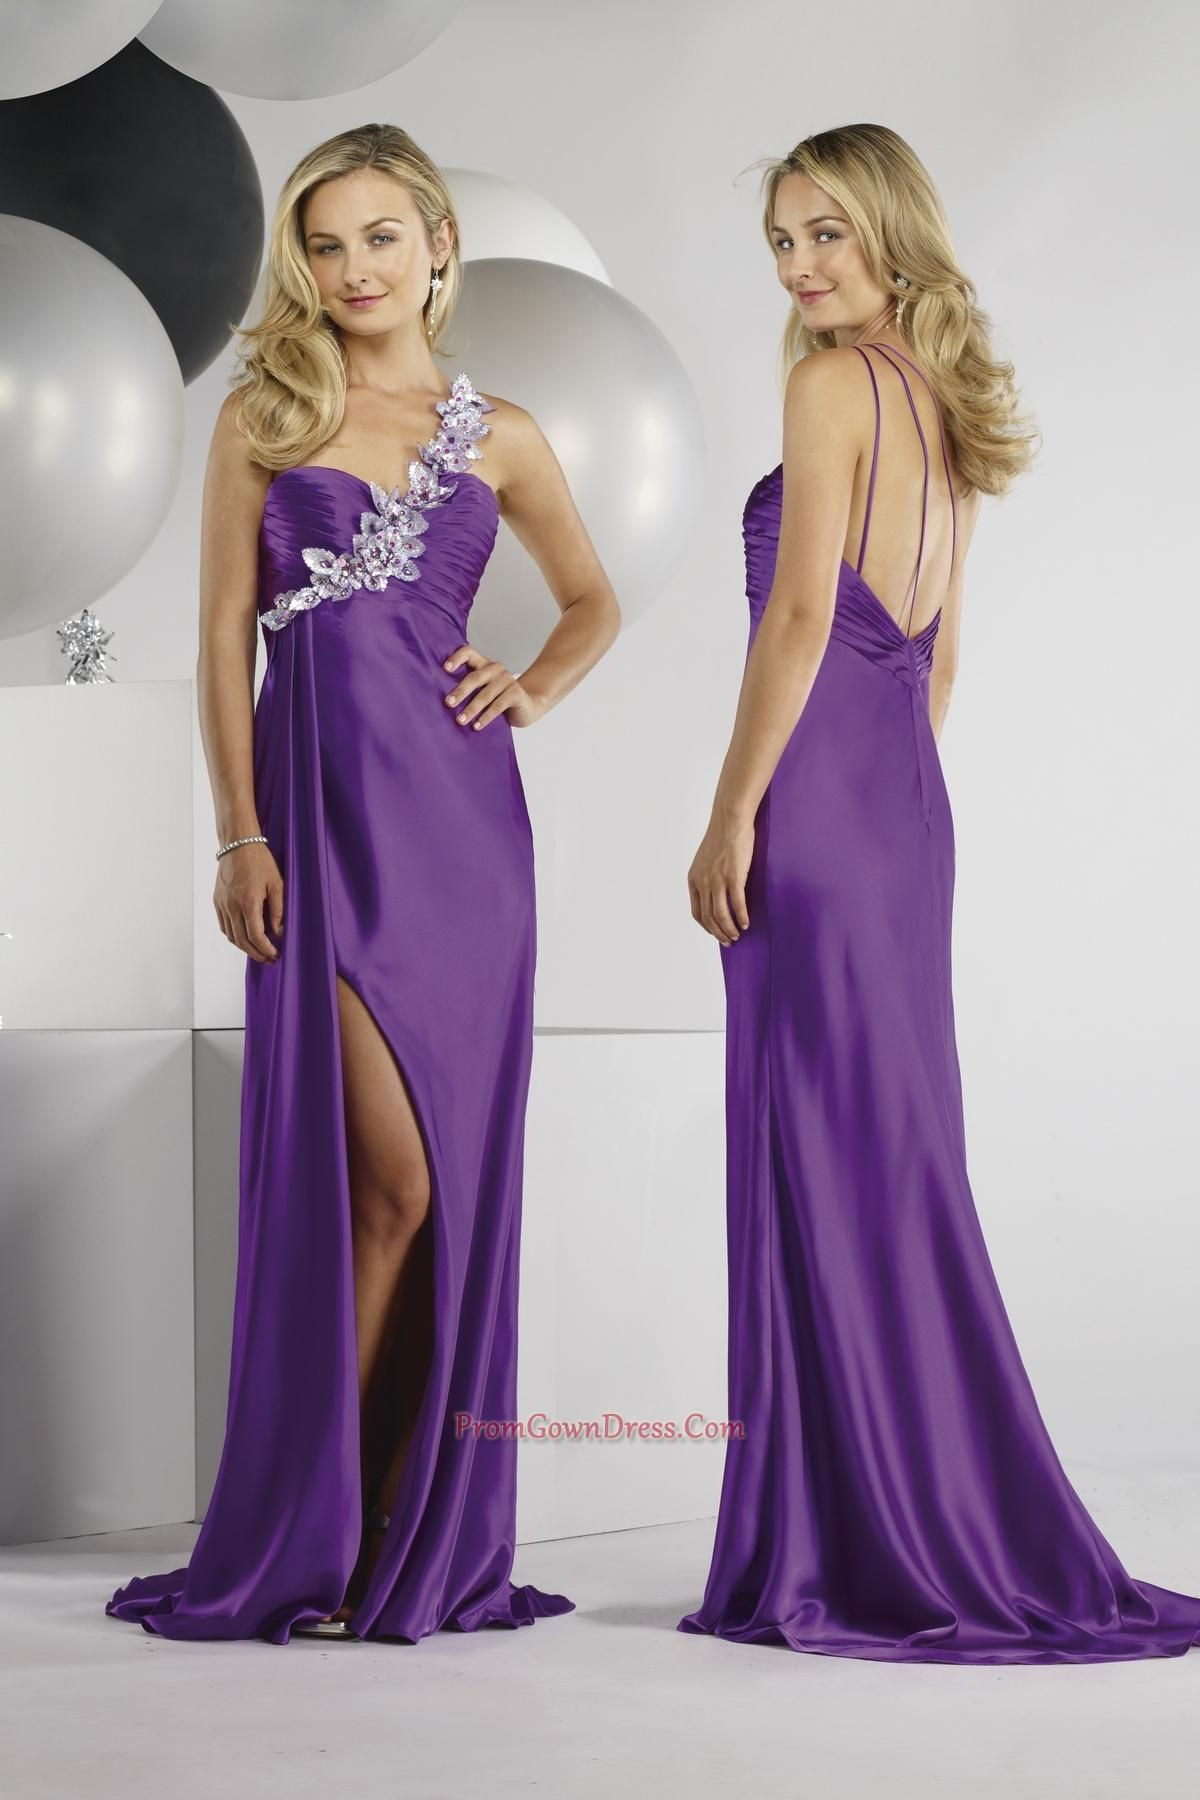 These Dresses And More At Lizfields Com Http Www Lizfields Com Product Bridesmaid Dresses Prom Dresses Backless Prom Dresses Dresses [ 1800 x 1200 Pixel ]